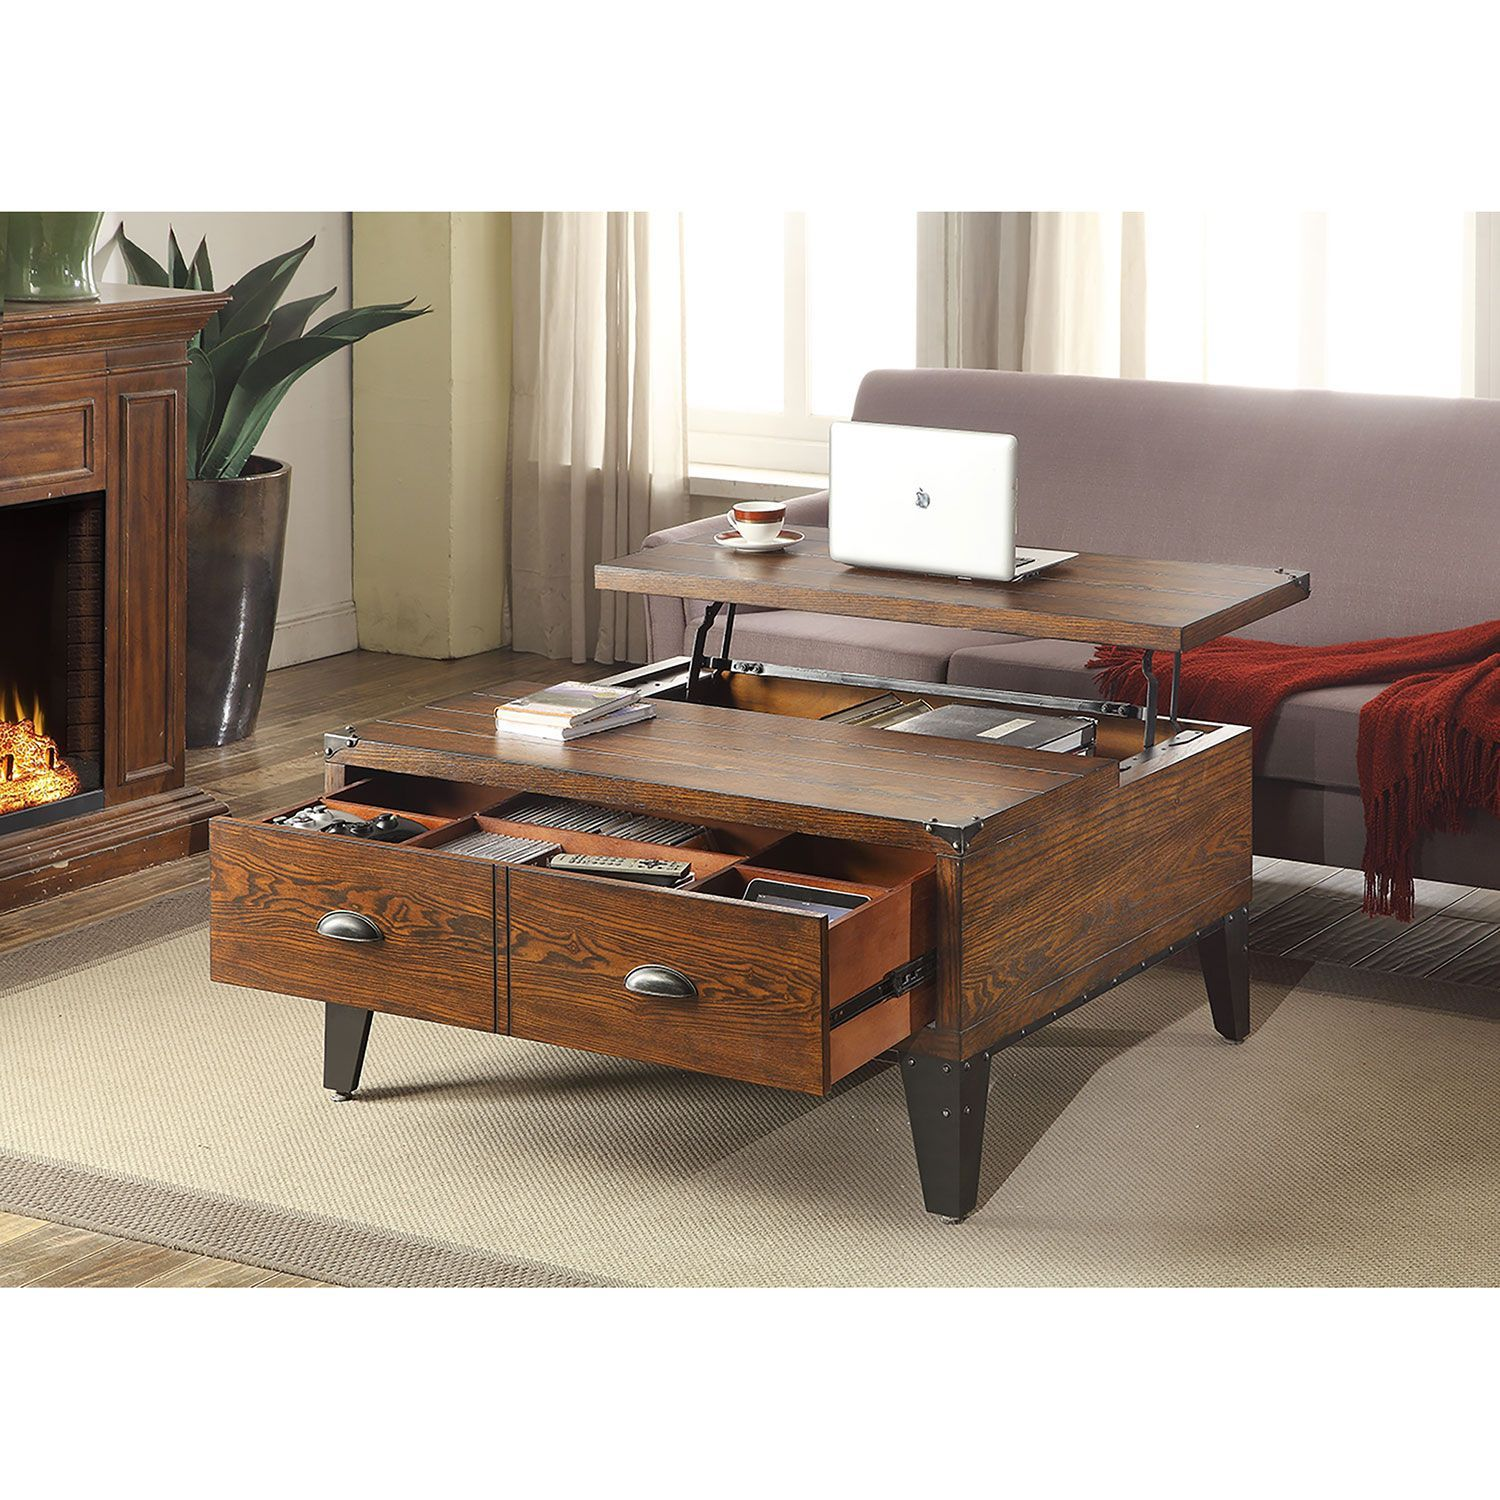 Wellington Lift Top Coffee Table Sam S Club 299 88